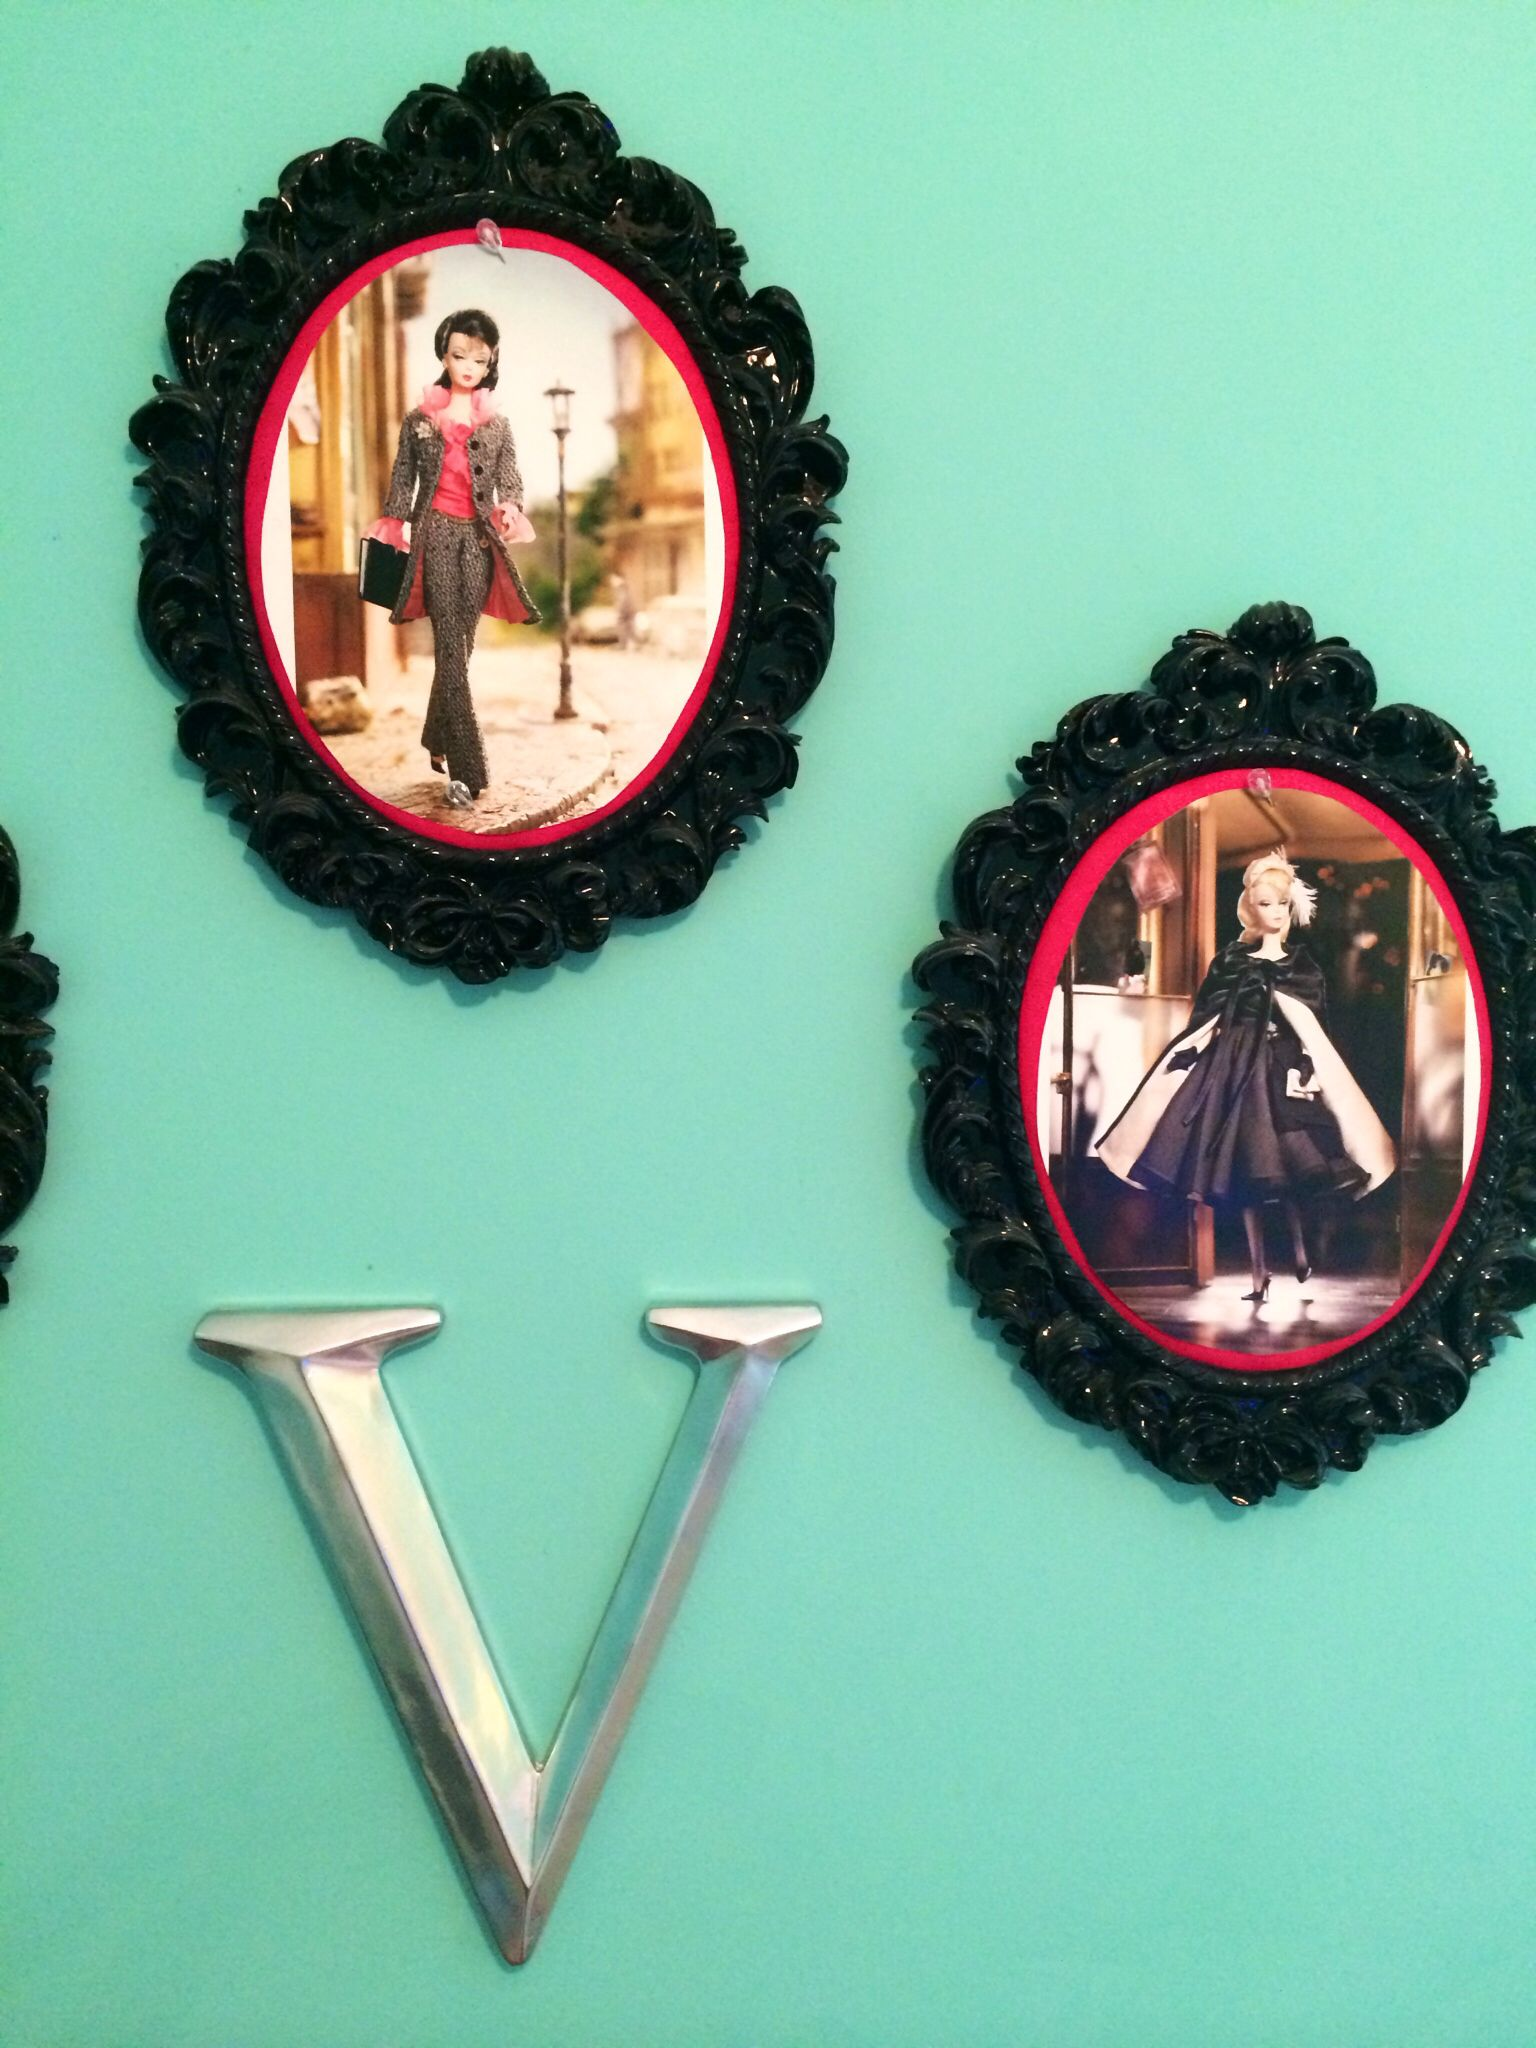 Easy and inexpensive wall decor ideas for a little girls room I